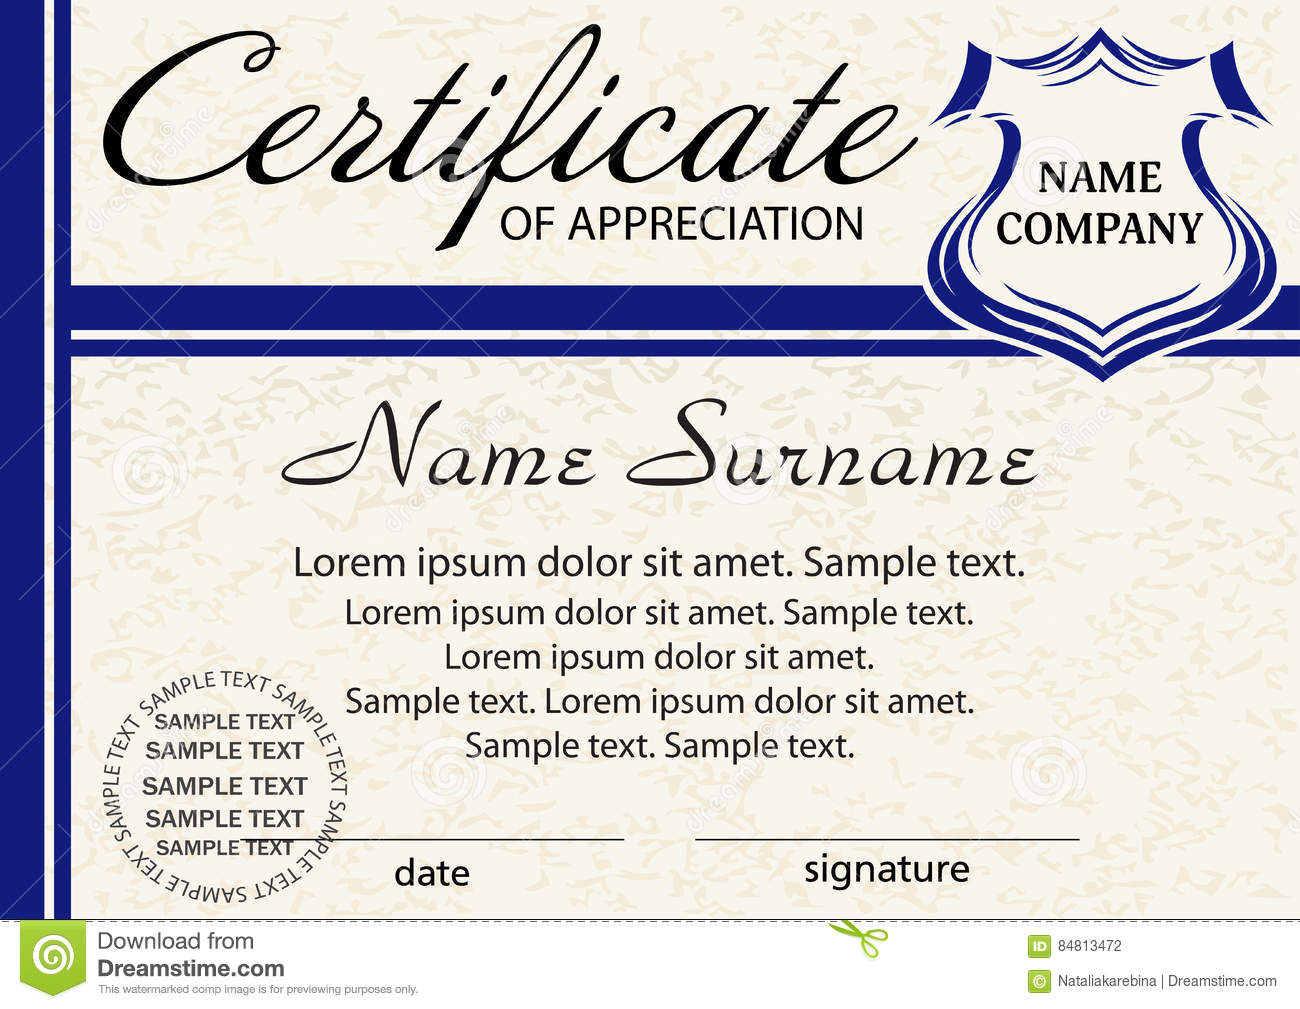 template certificate of appreciation elegant blue design vecto